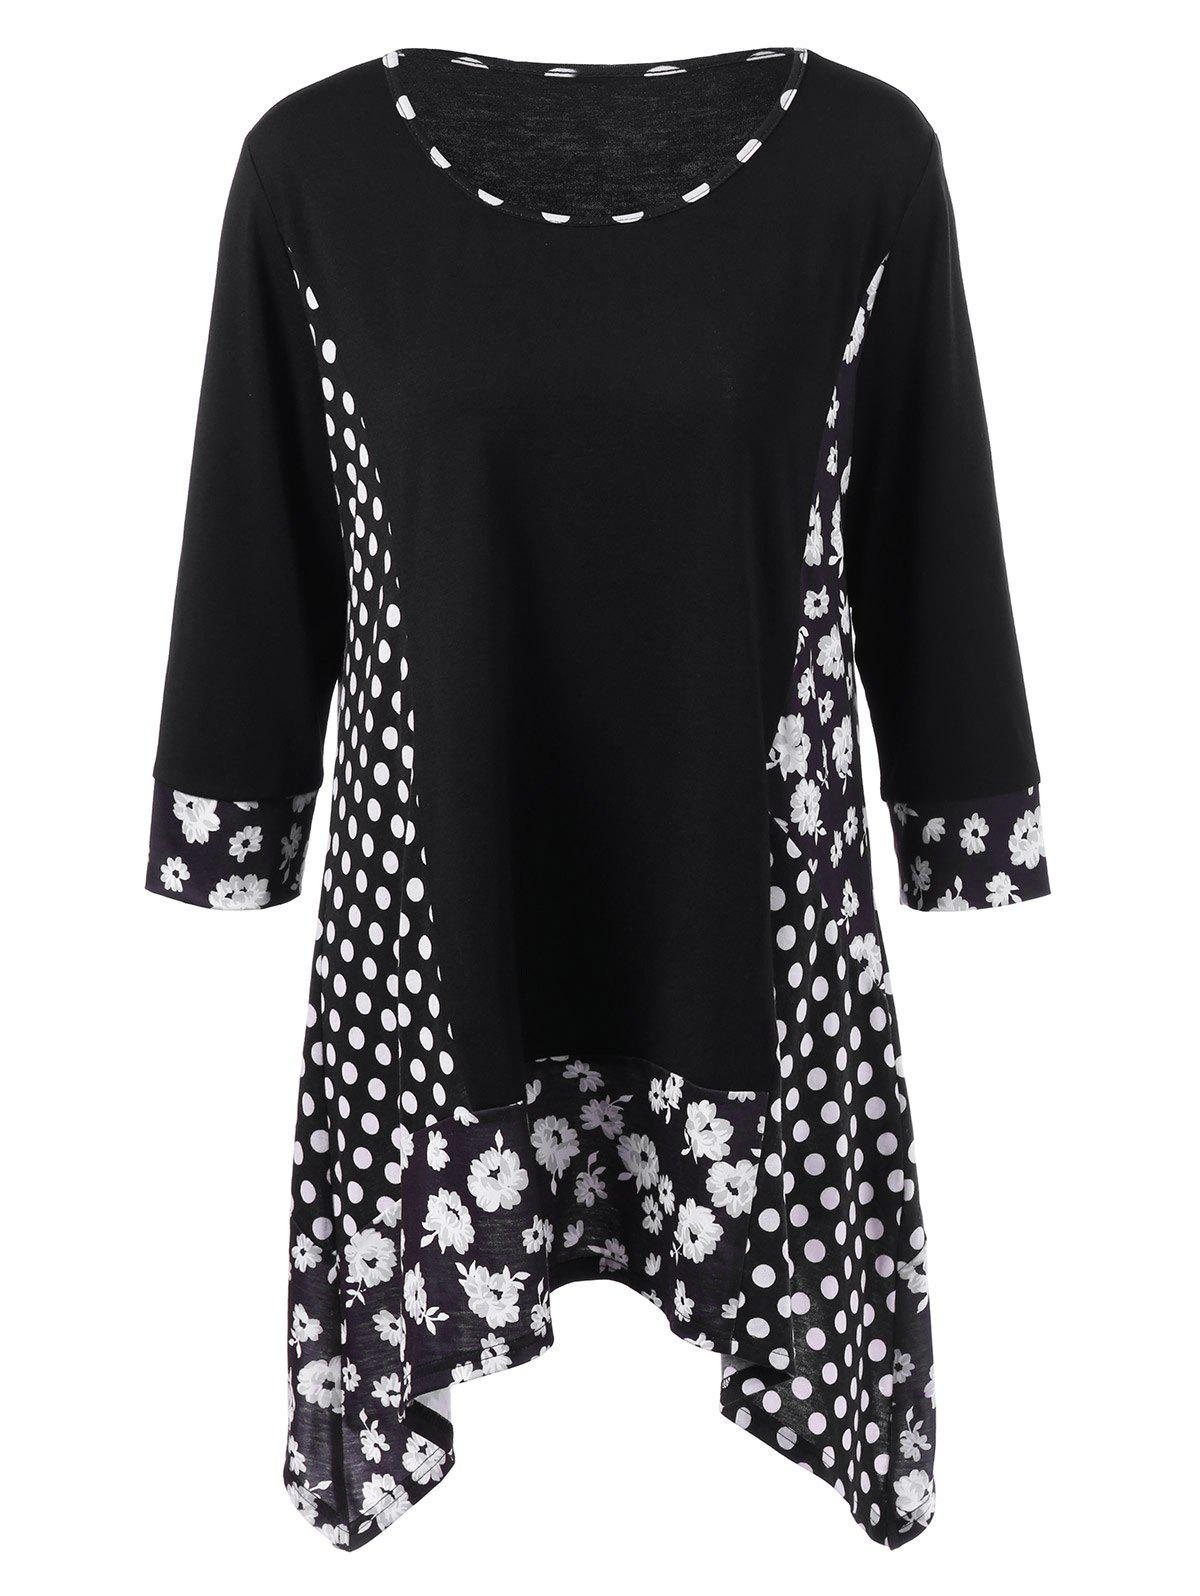 Plus Size Floral and Polka Dot T-Shirt plus size polka dot and floral swimwear